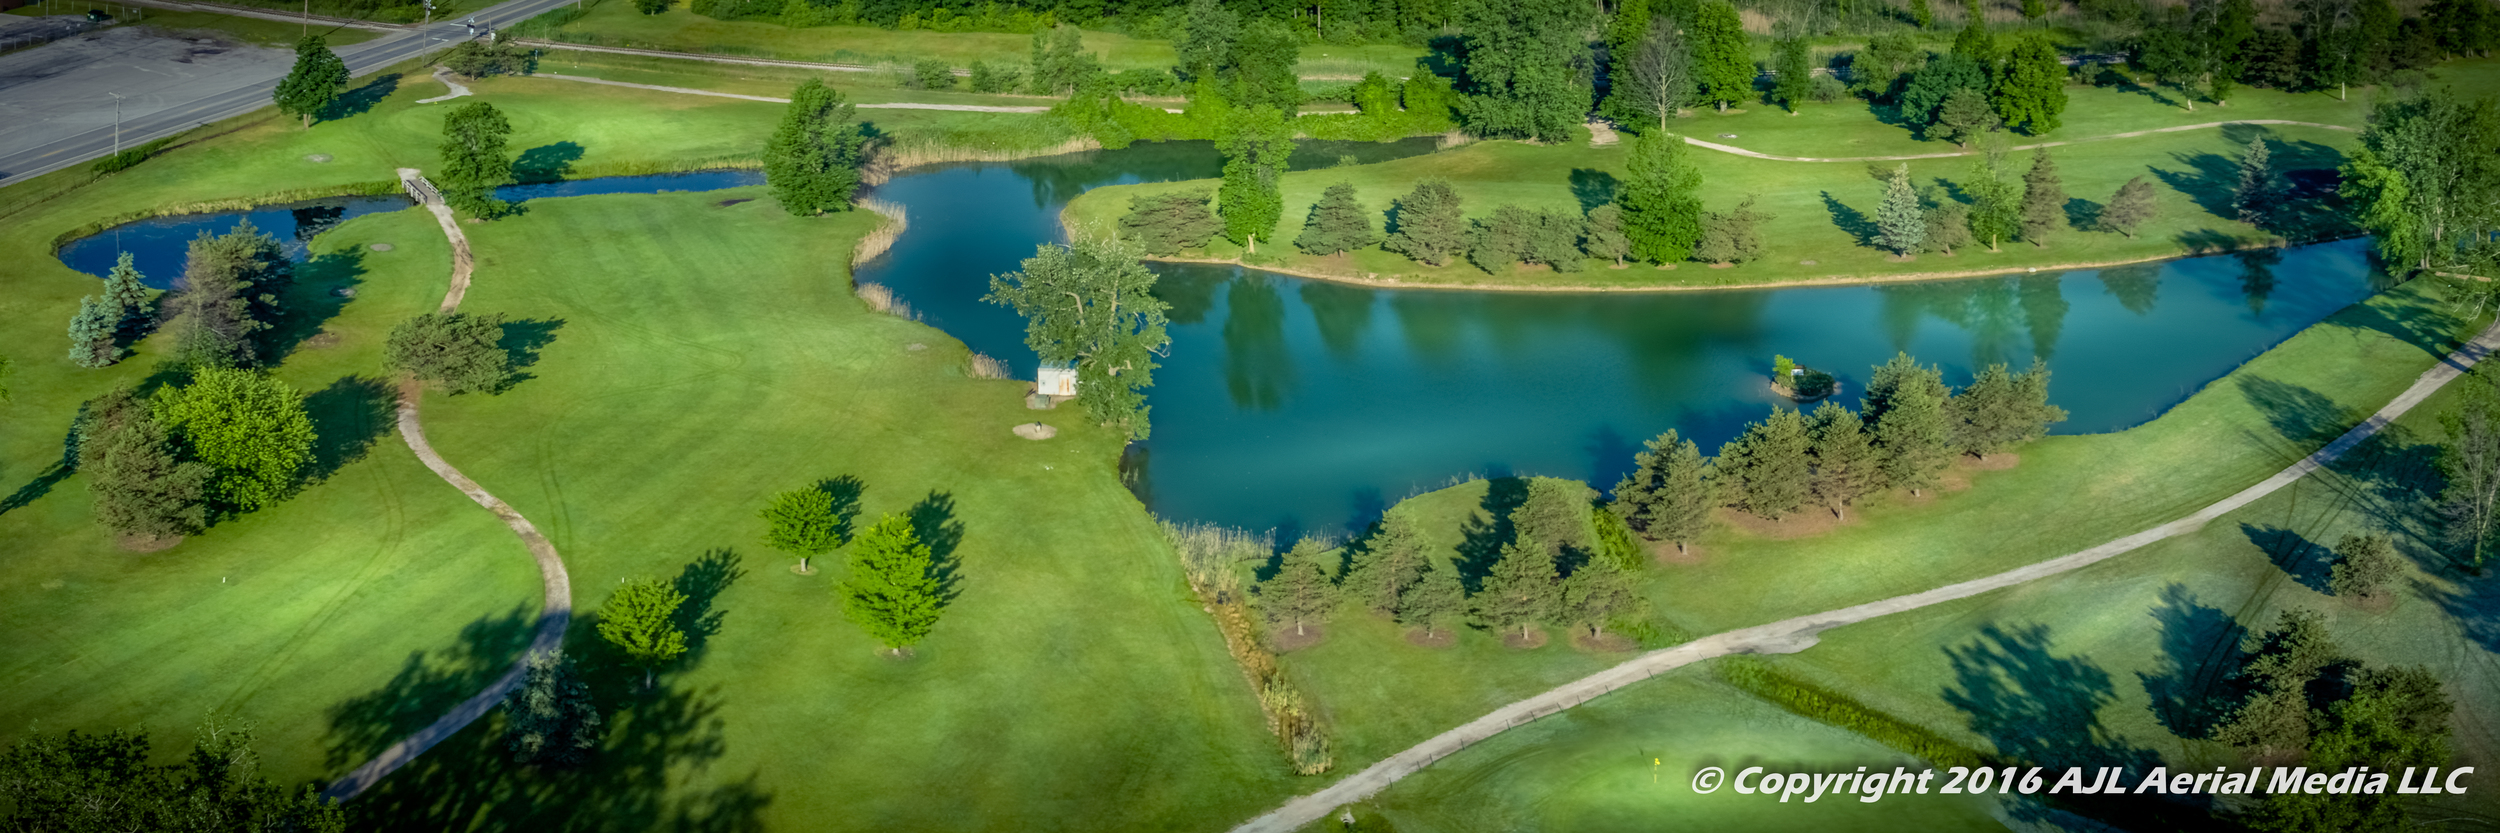 Spring Valley Golf Course Aerial 2016 Panorama